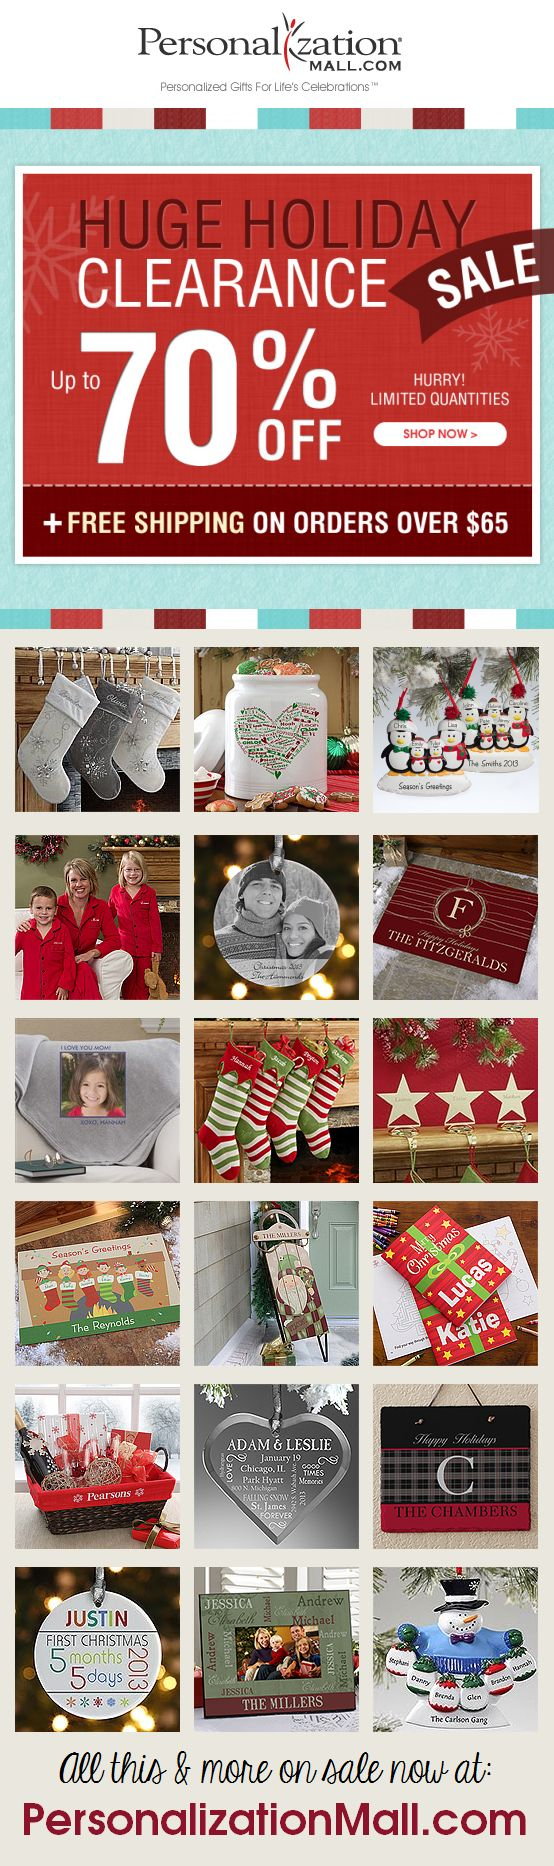 PersonalizationMall is having a HUGE Christmas Clearance Sale! You can save up to 70% off Personalized Christmas Stockings, Christmas Ornaments and all types of adorable gifts and decorations - buy now and save the gifts for next year! #Christmas #Sale #Clearance